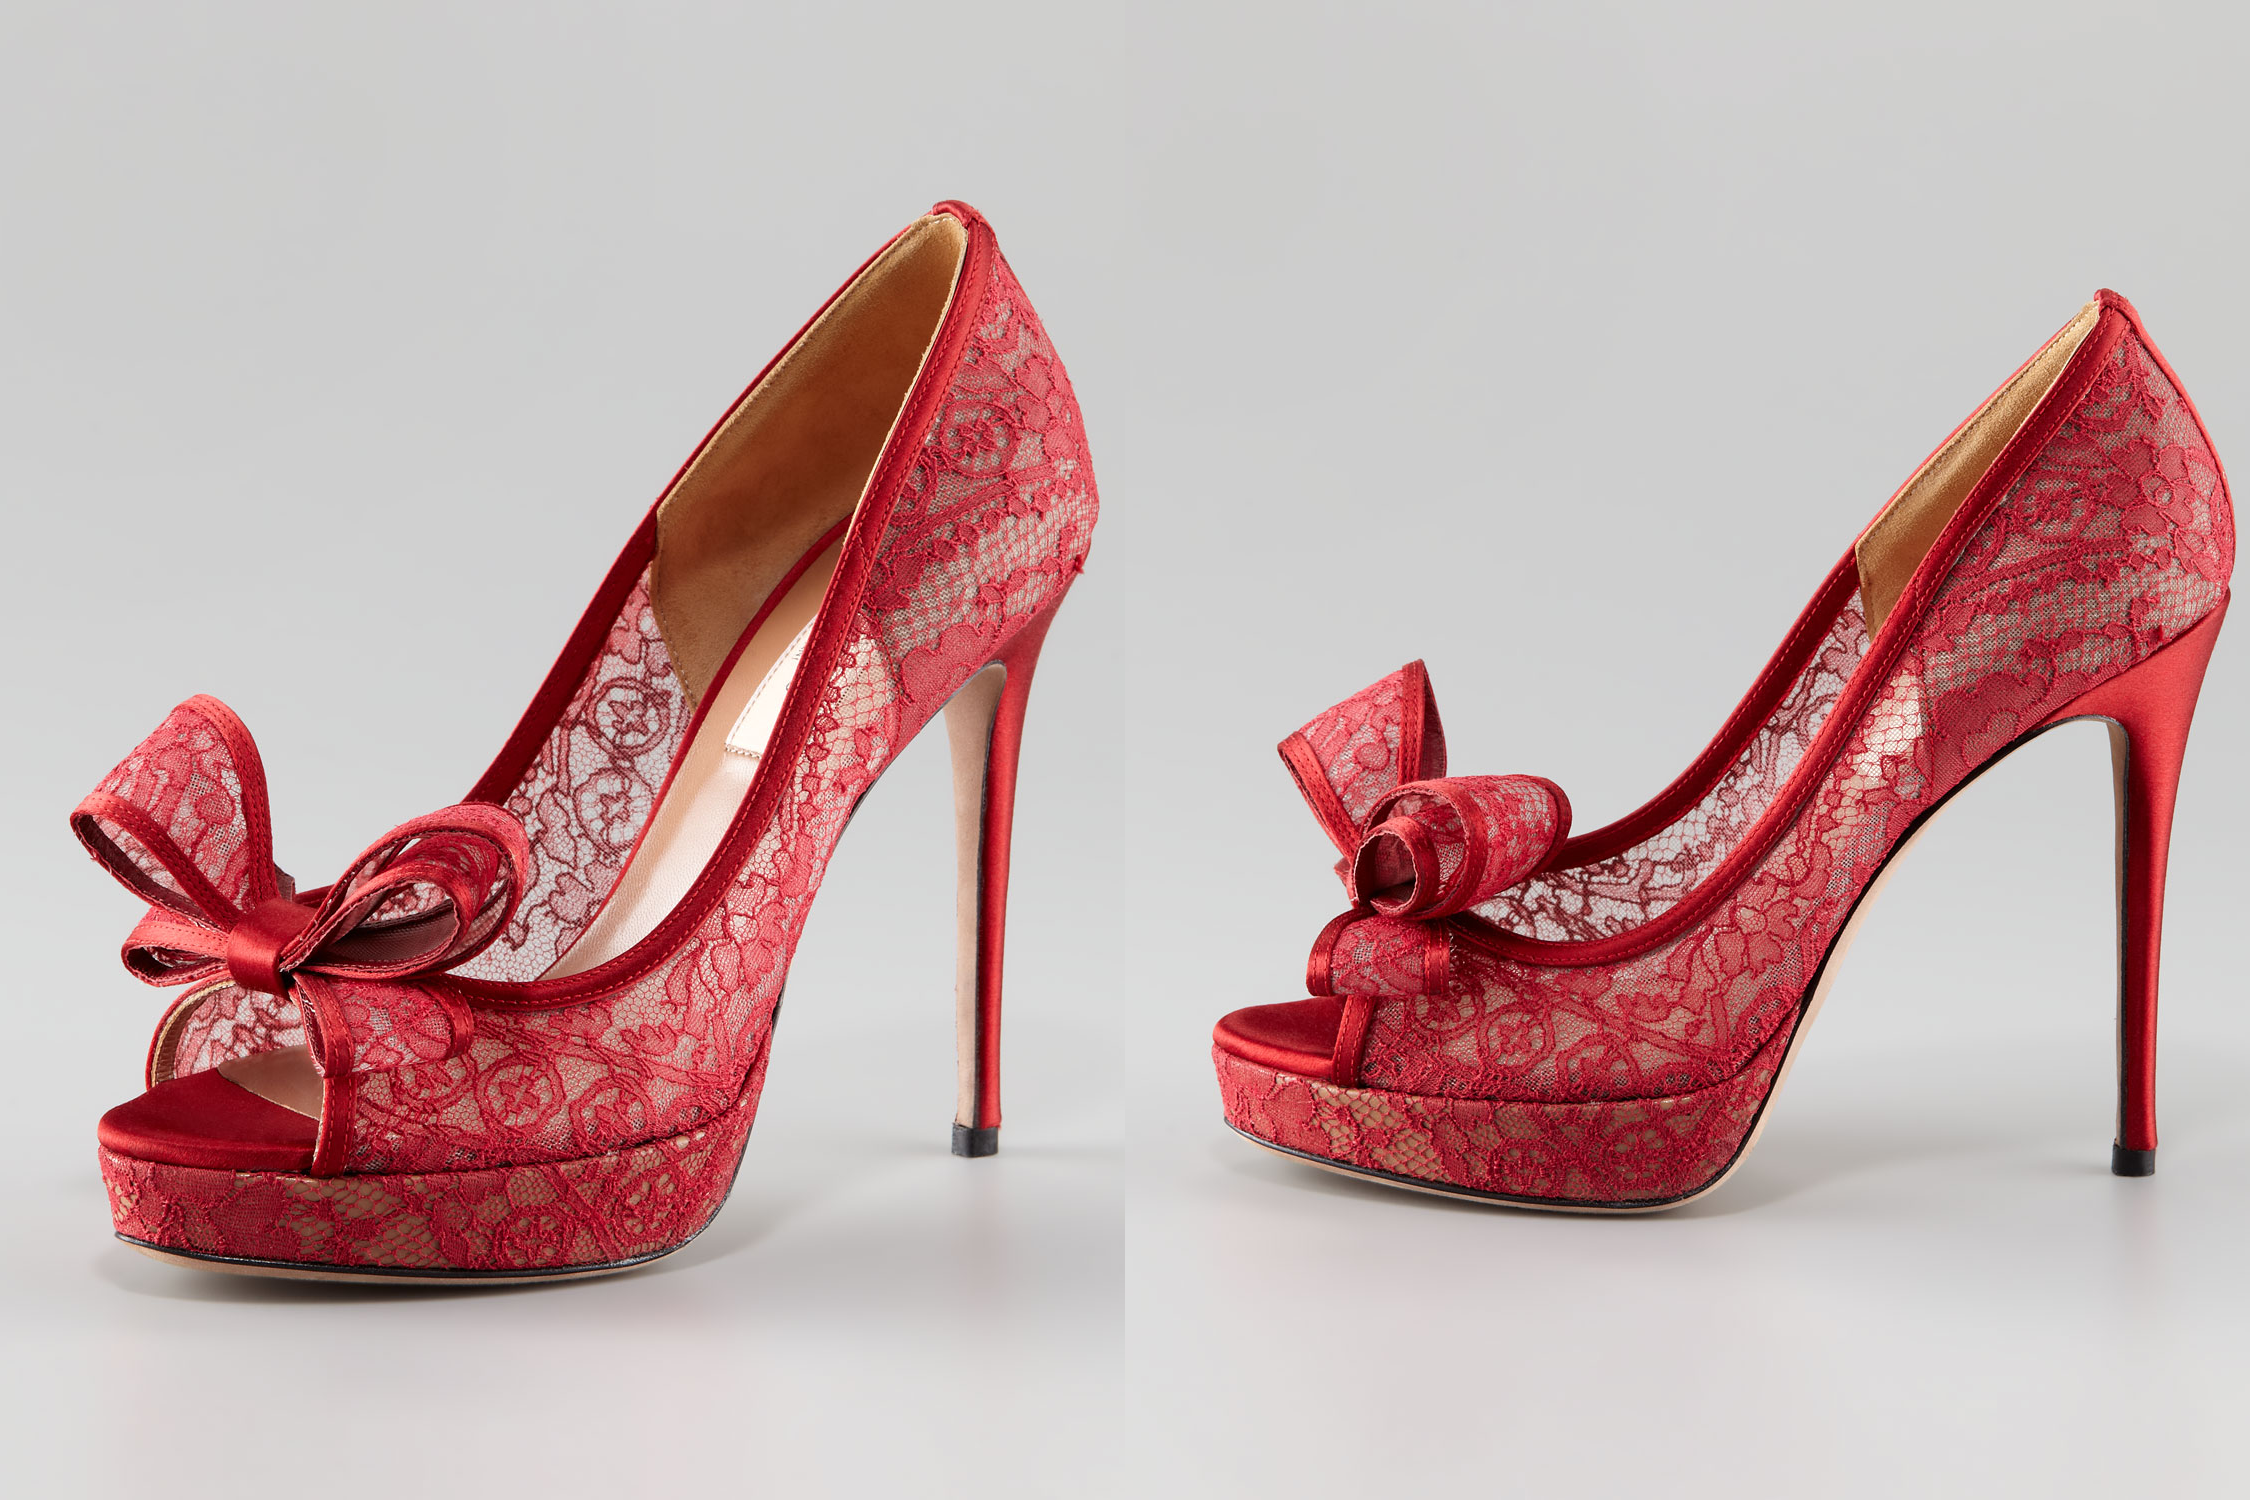 illusion wedding shoes for 2013 brides red lace onewedcom